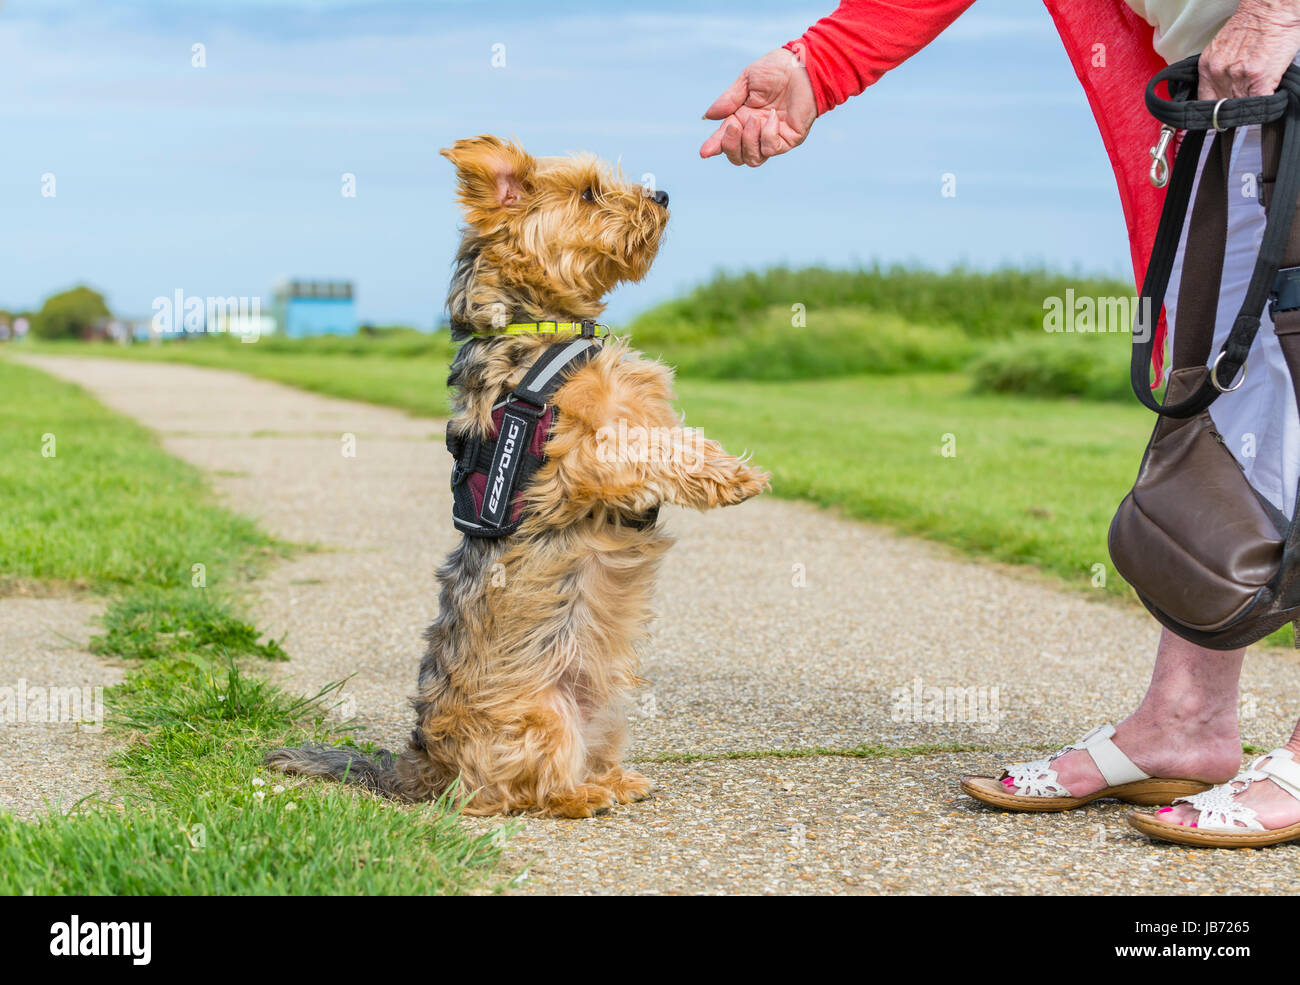 Dog on hind legs. Yorkshire Terrier crossed with Border Collie dog awaiting food from owner. - Stock Image